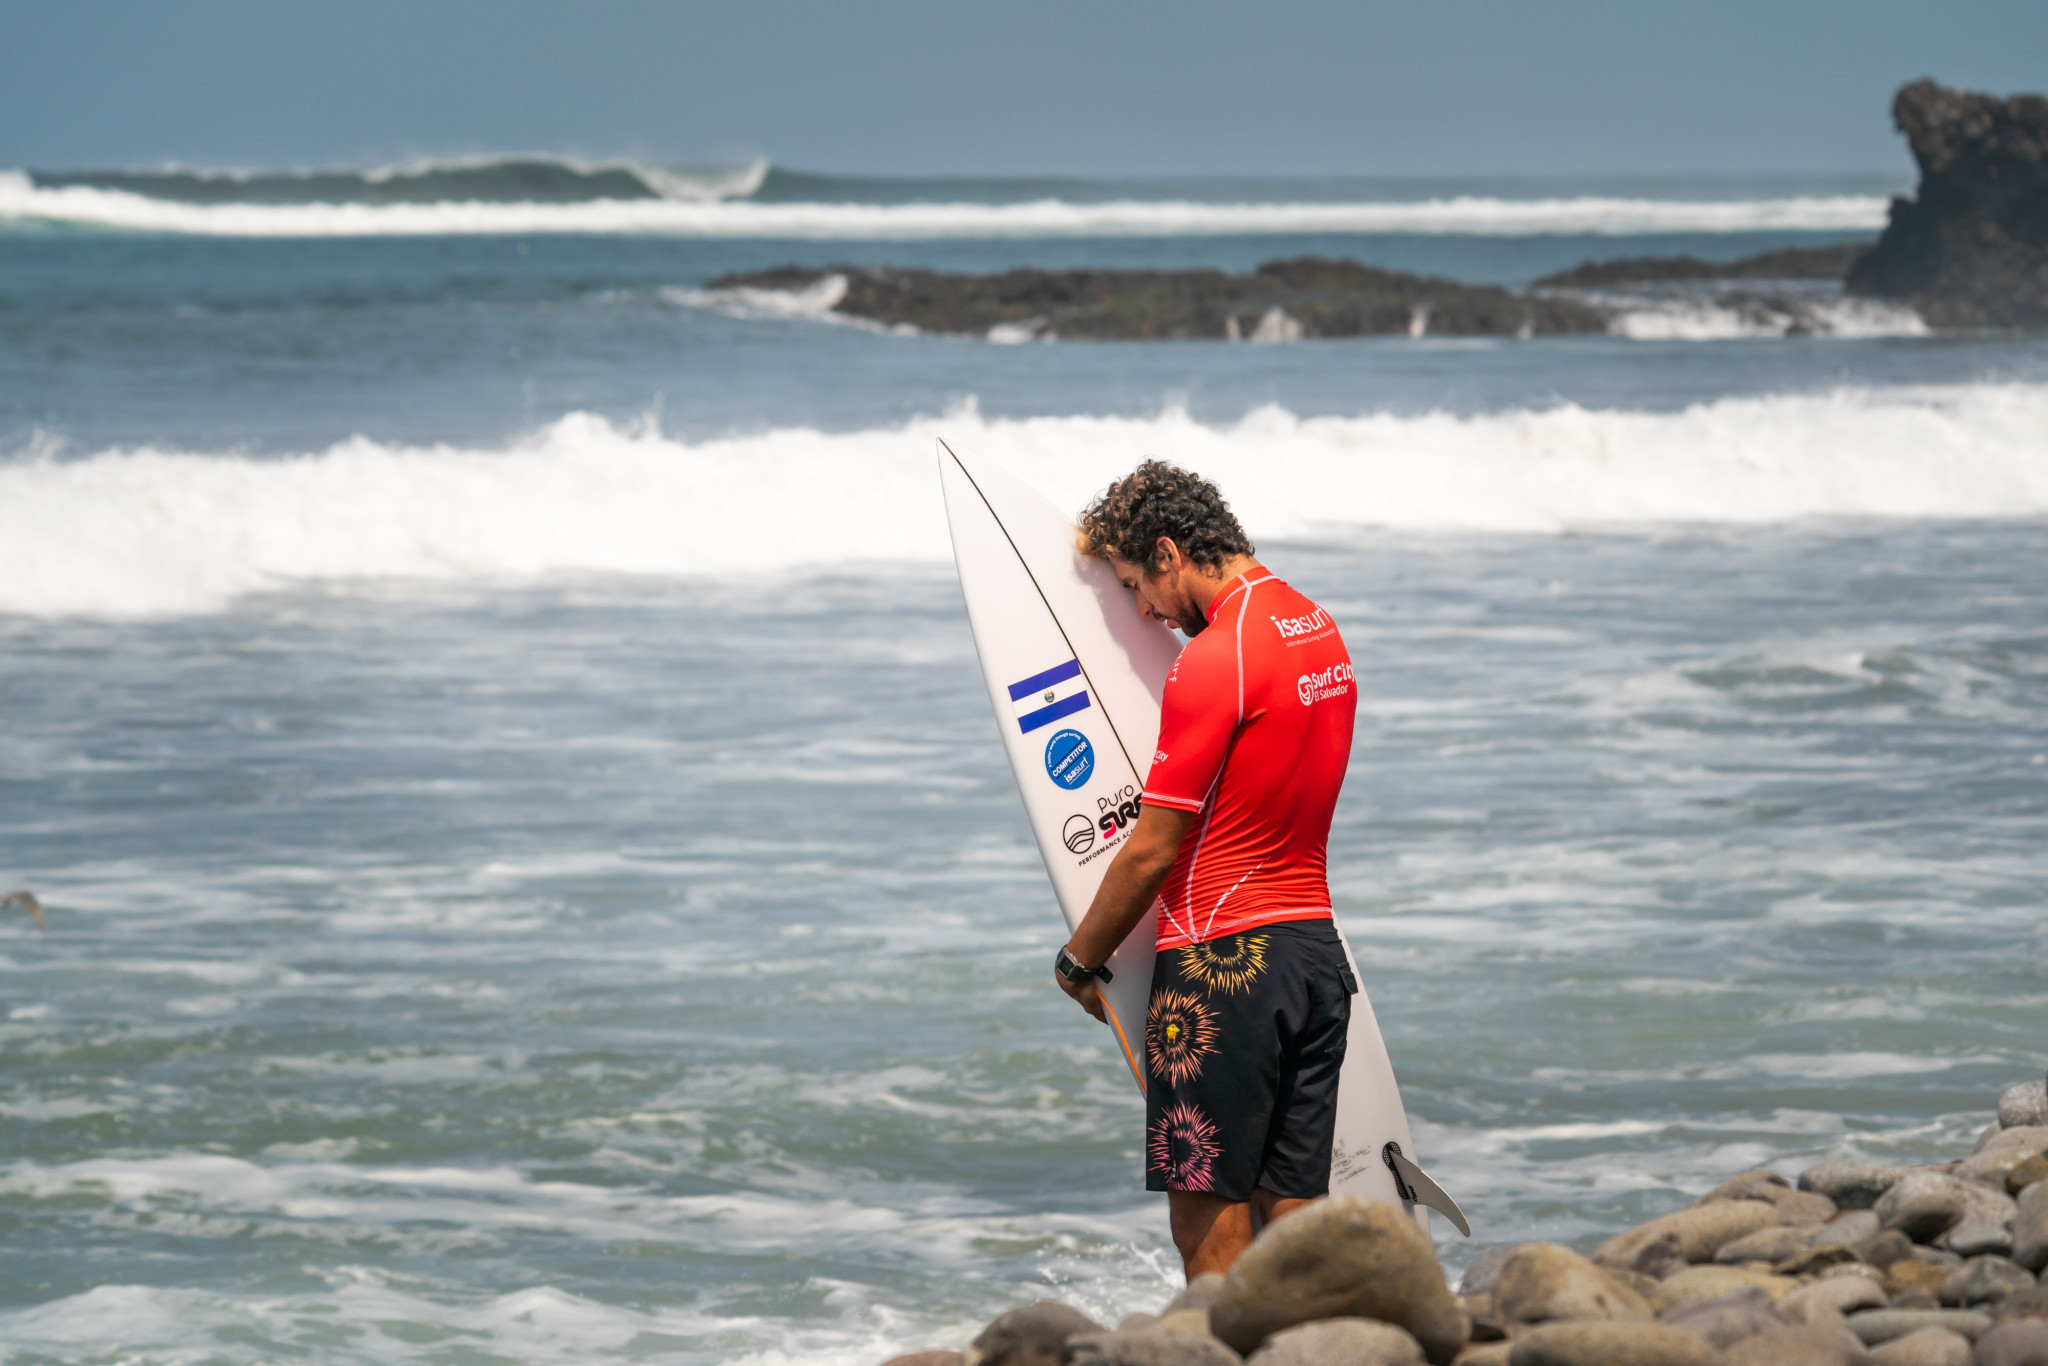 Home surfer Bryan Perez was impressive through the first two days, but placed third in his round-three heat ©ISA/Sean Evans